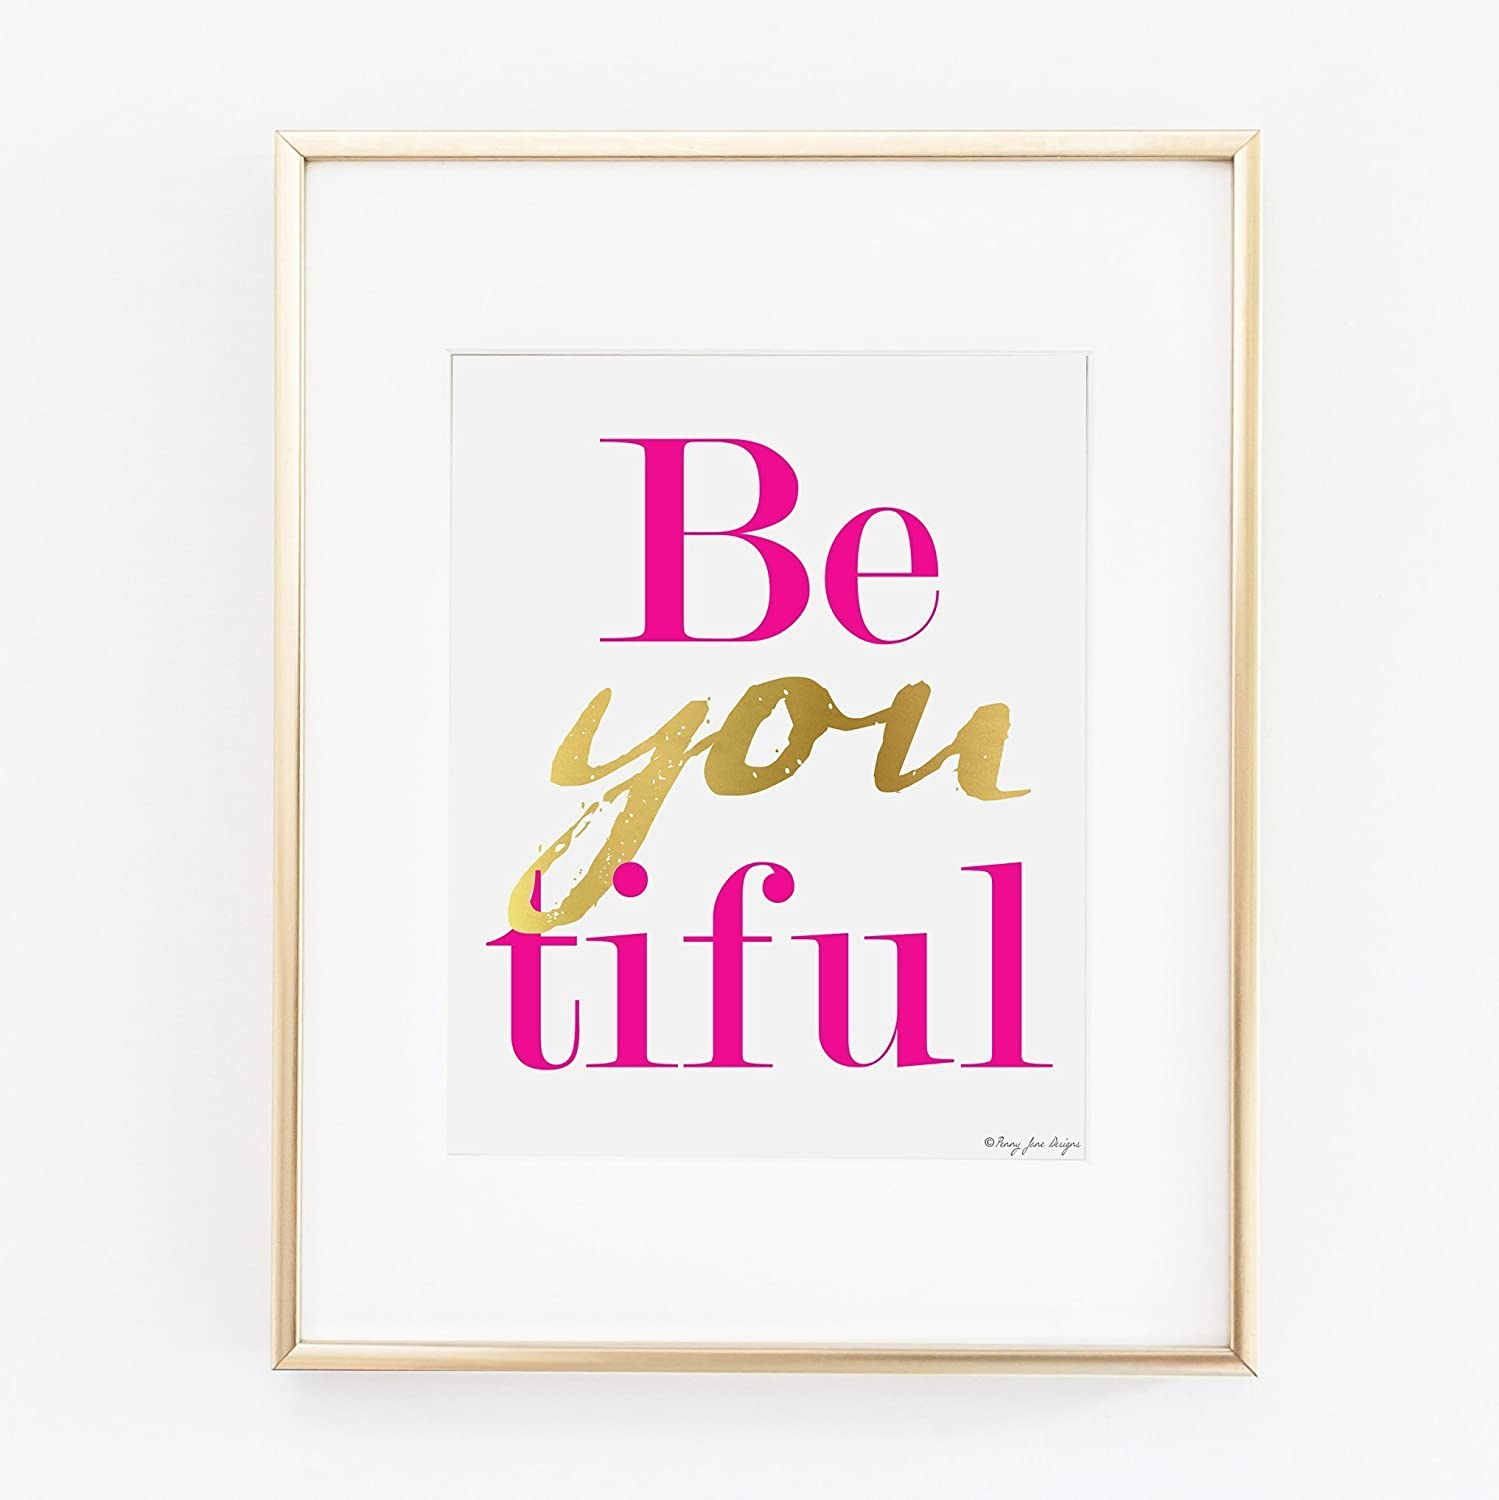 Be You Tiful Art Print Beautiful Art Office Decor Art Print Motivational Art Gold Art Nursery Art Print Pink And Gold Print Home Decor Office